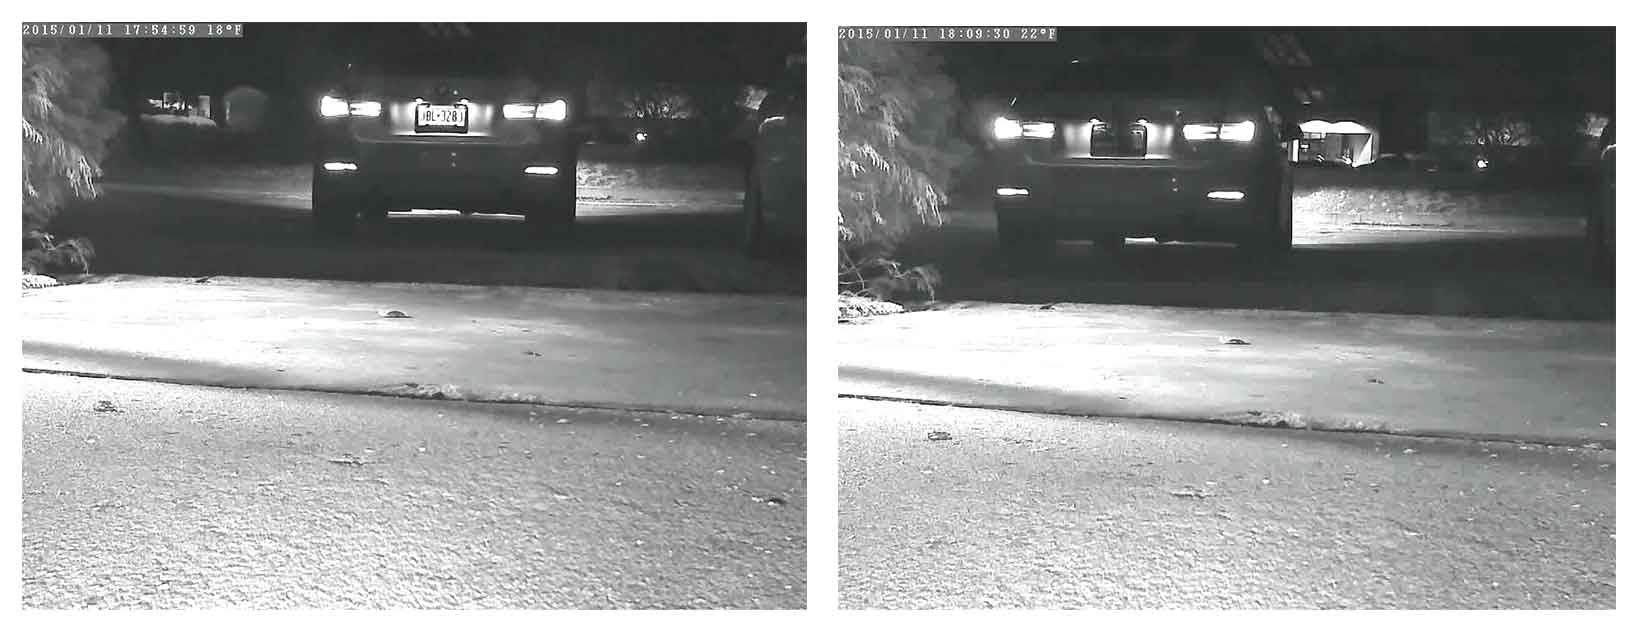 ir image license plate before after